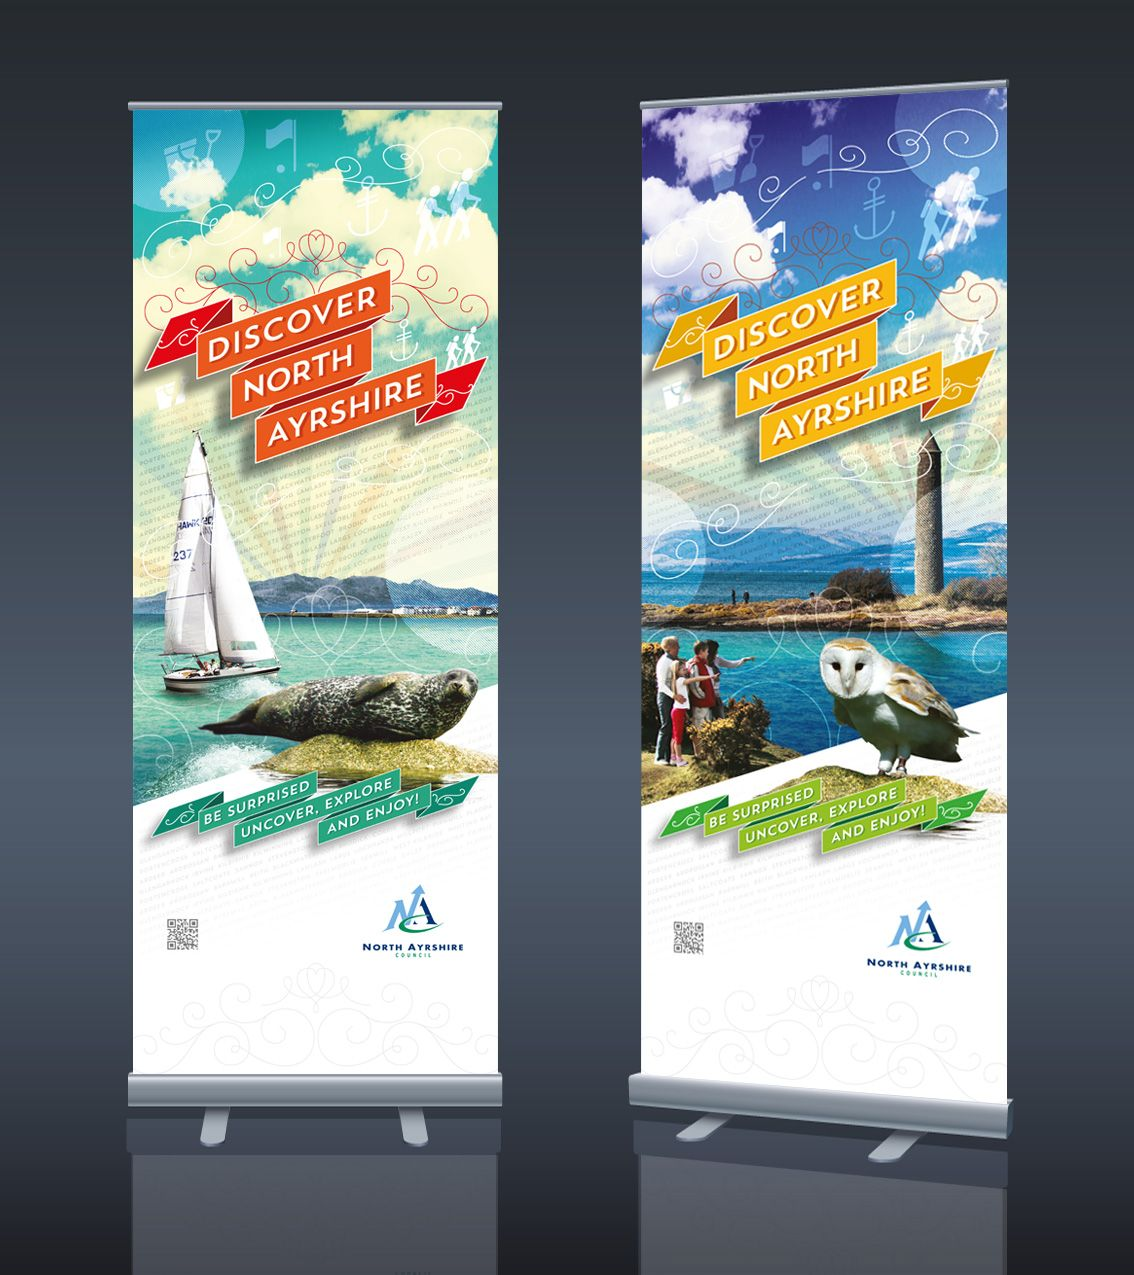 Roller Banner Designs To Promote North Ayrshire As A Tourist